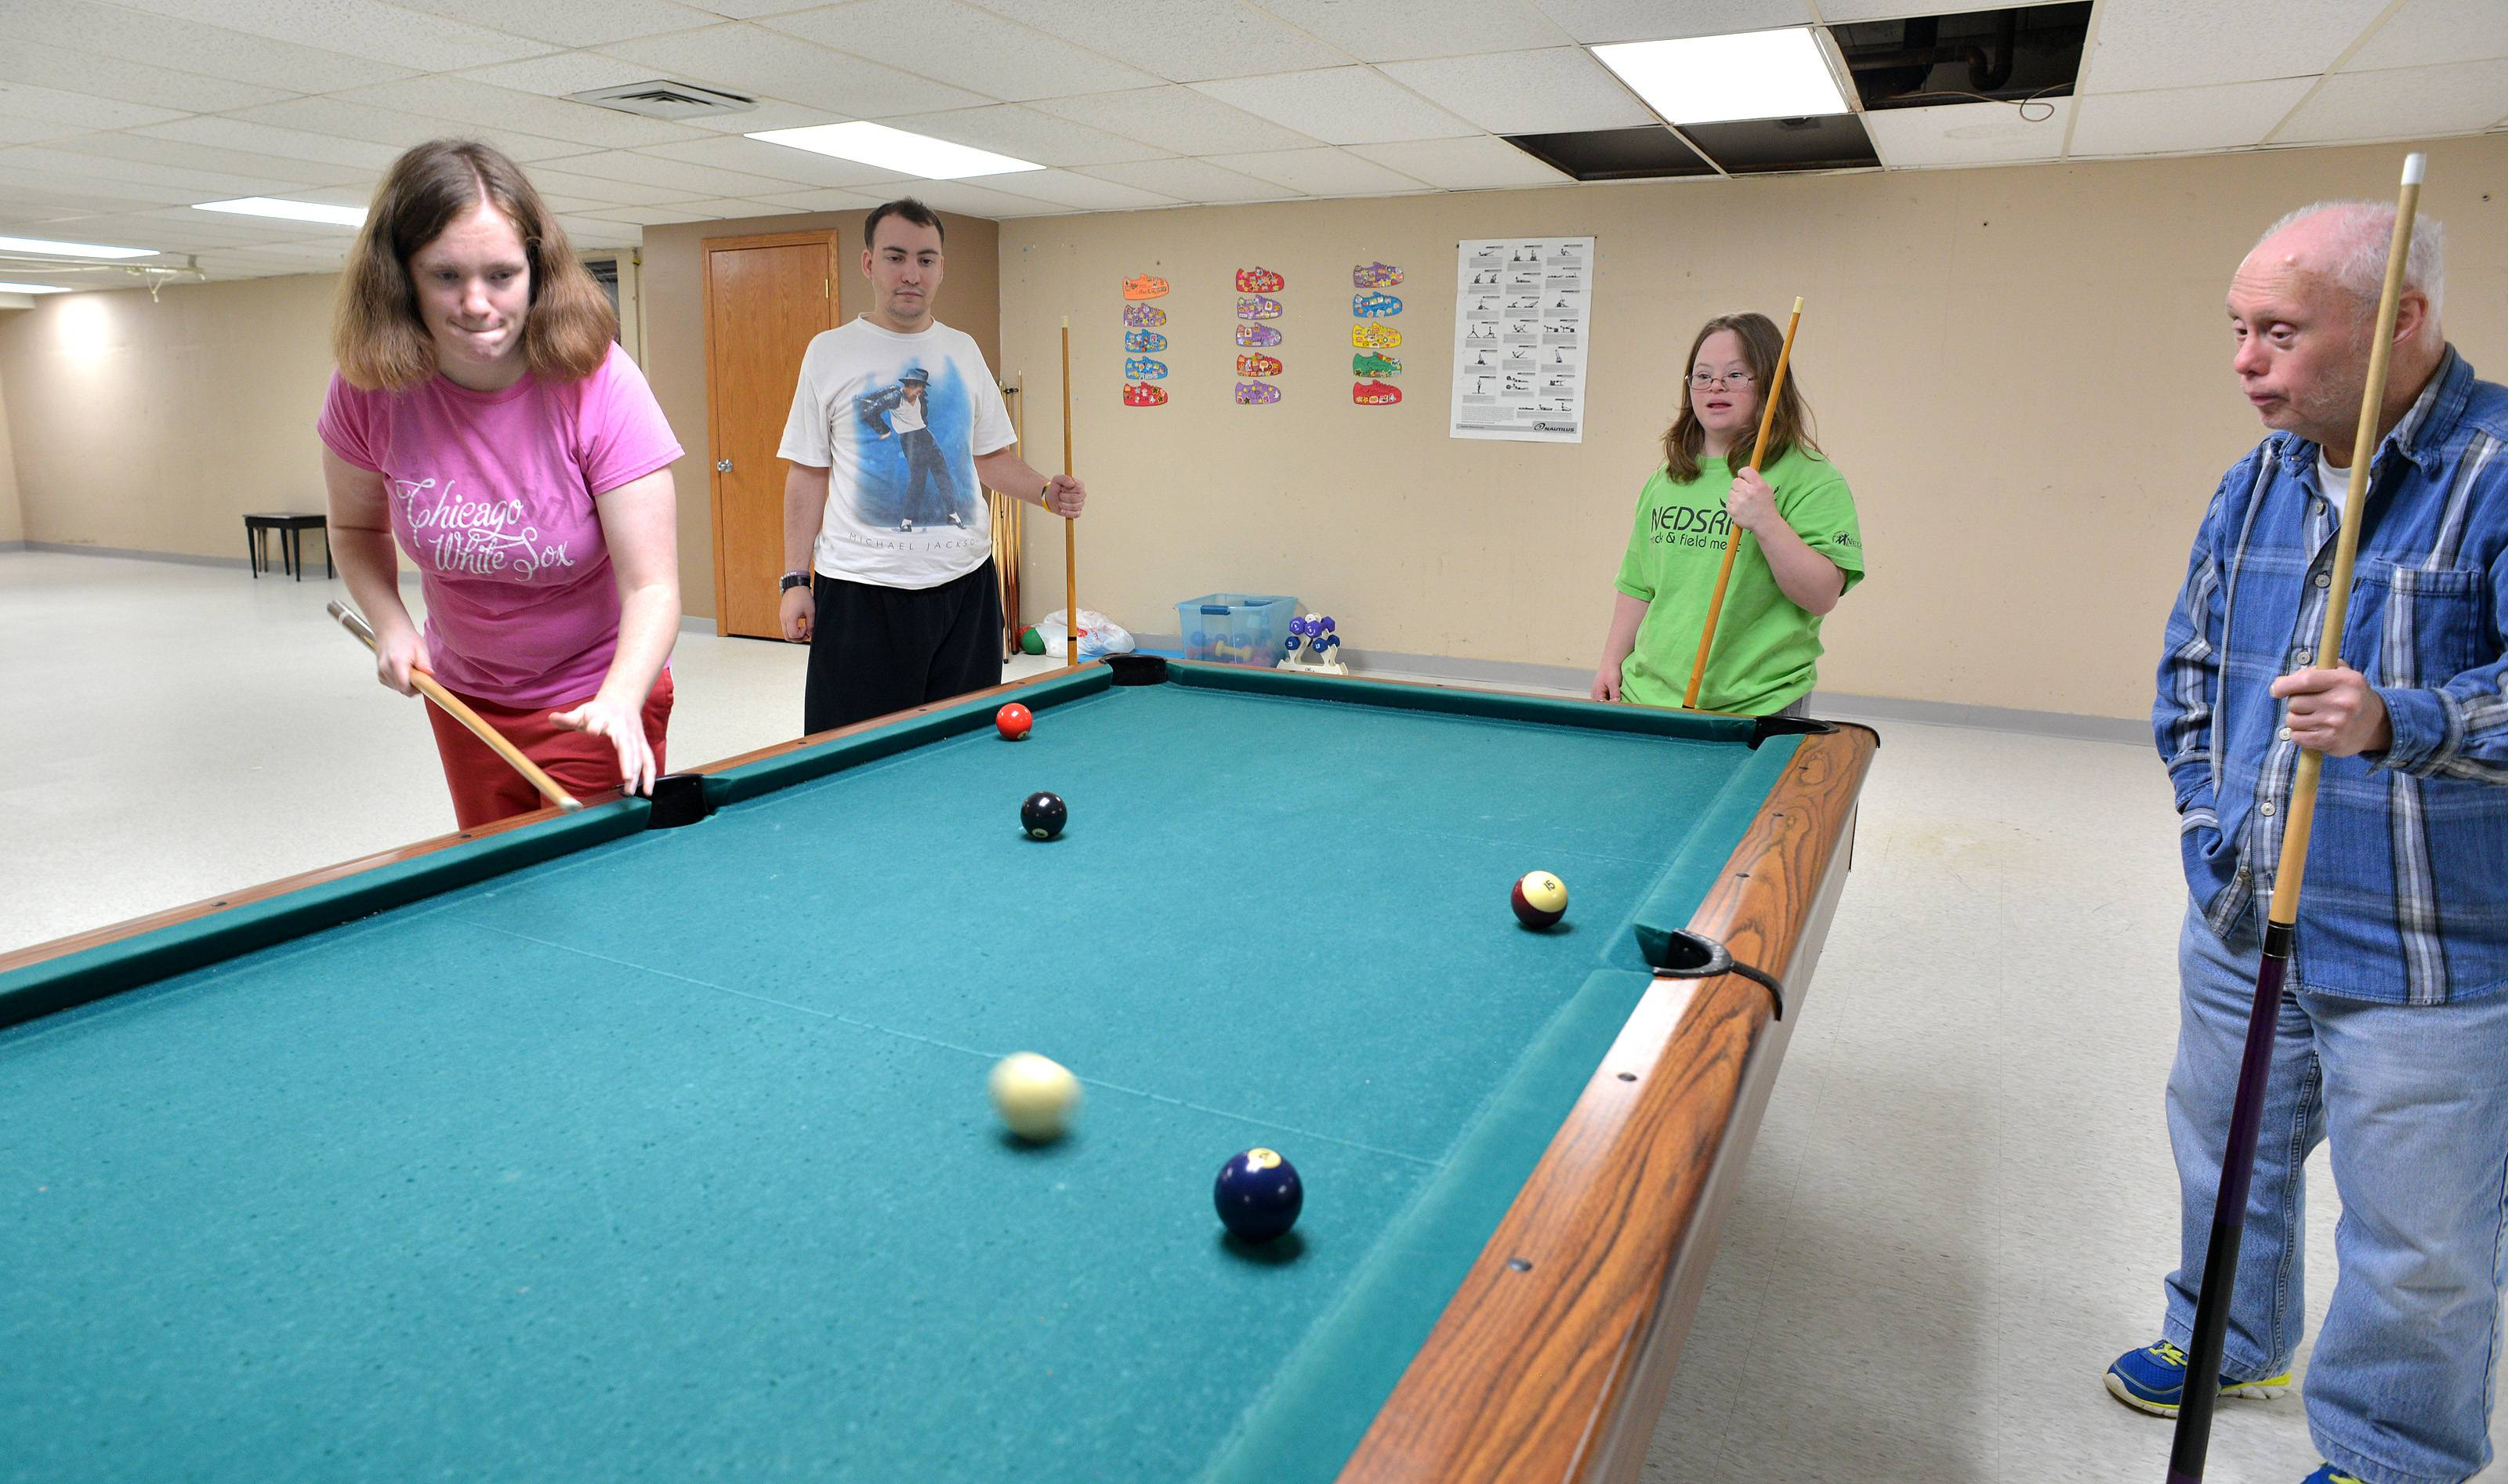 A large multipurpose room in the Deicke Home's basement offers several recreational opportunities. From left, residents Sarah Guidolin, Joe Passaretti, Katie Prentice and Raymond Maramba enjoy a game of pool.